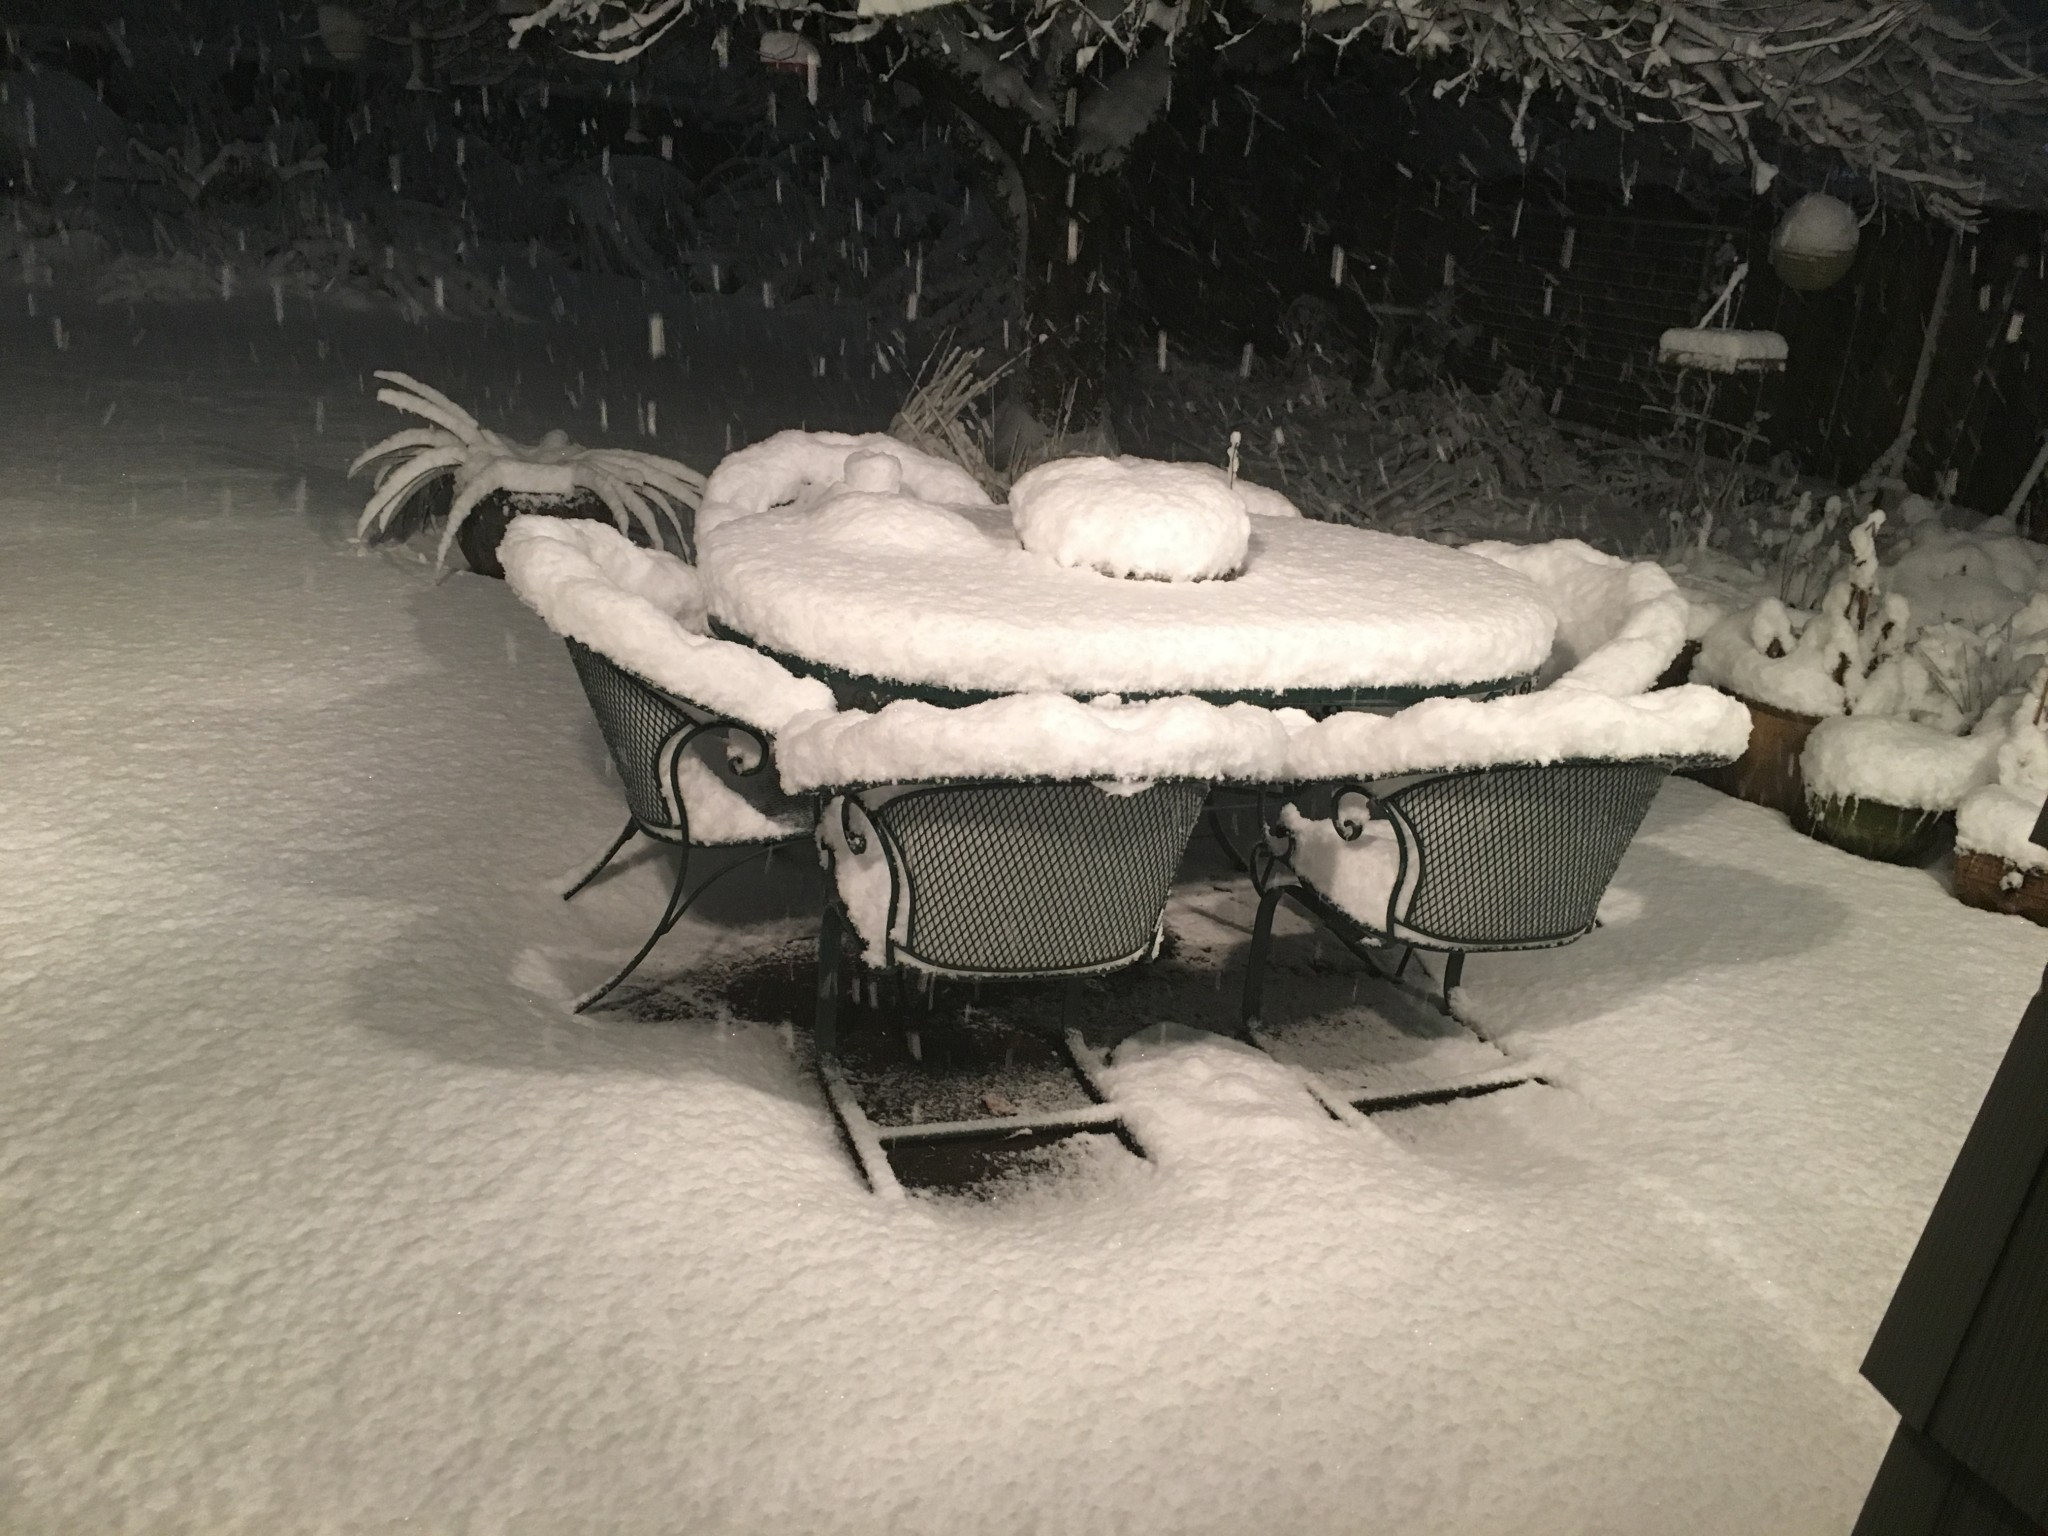 Second patio table shot at 9:42 p.m., or an hour and a half later.